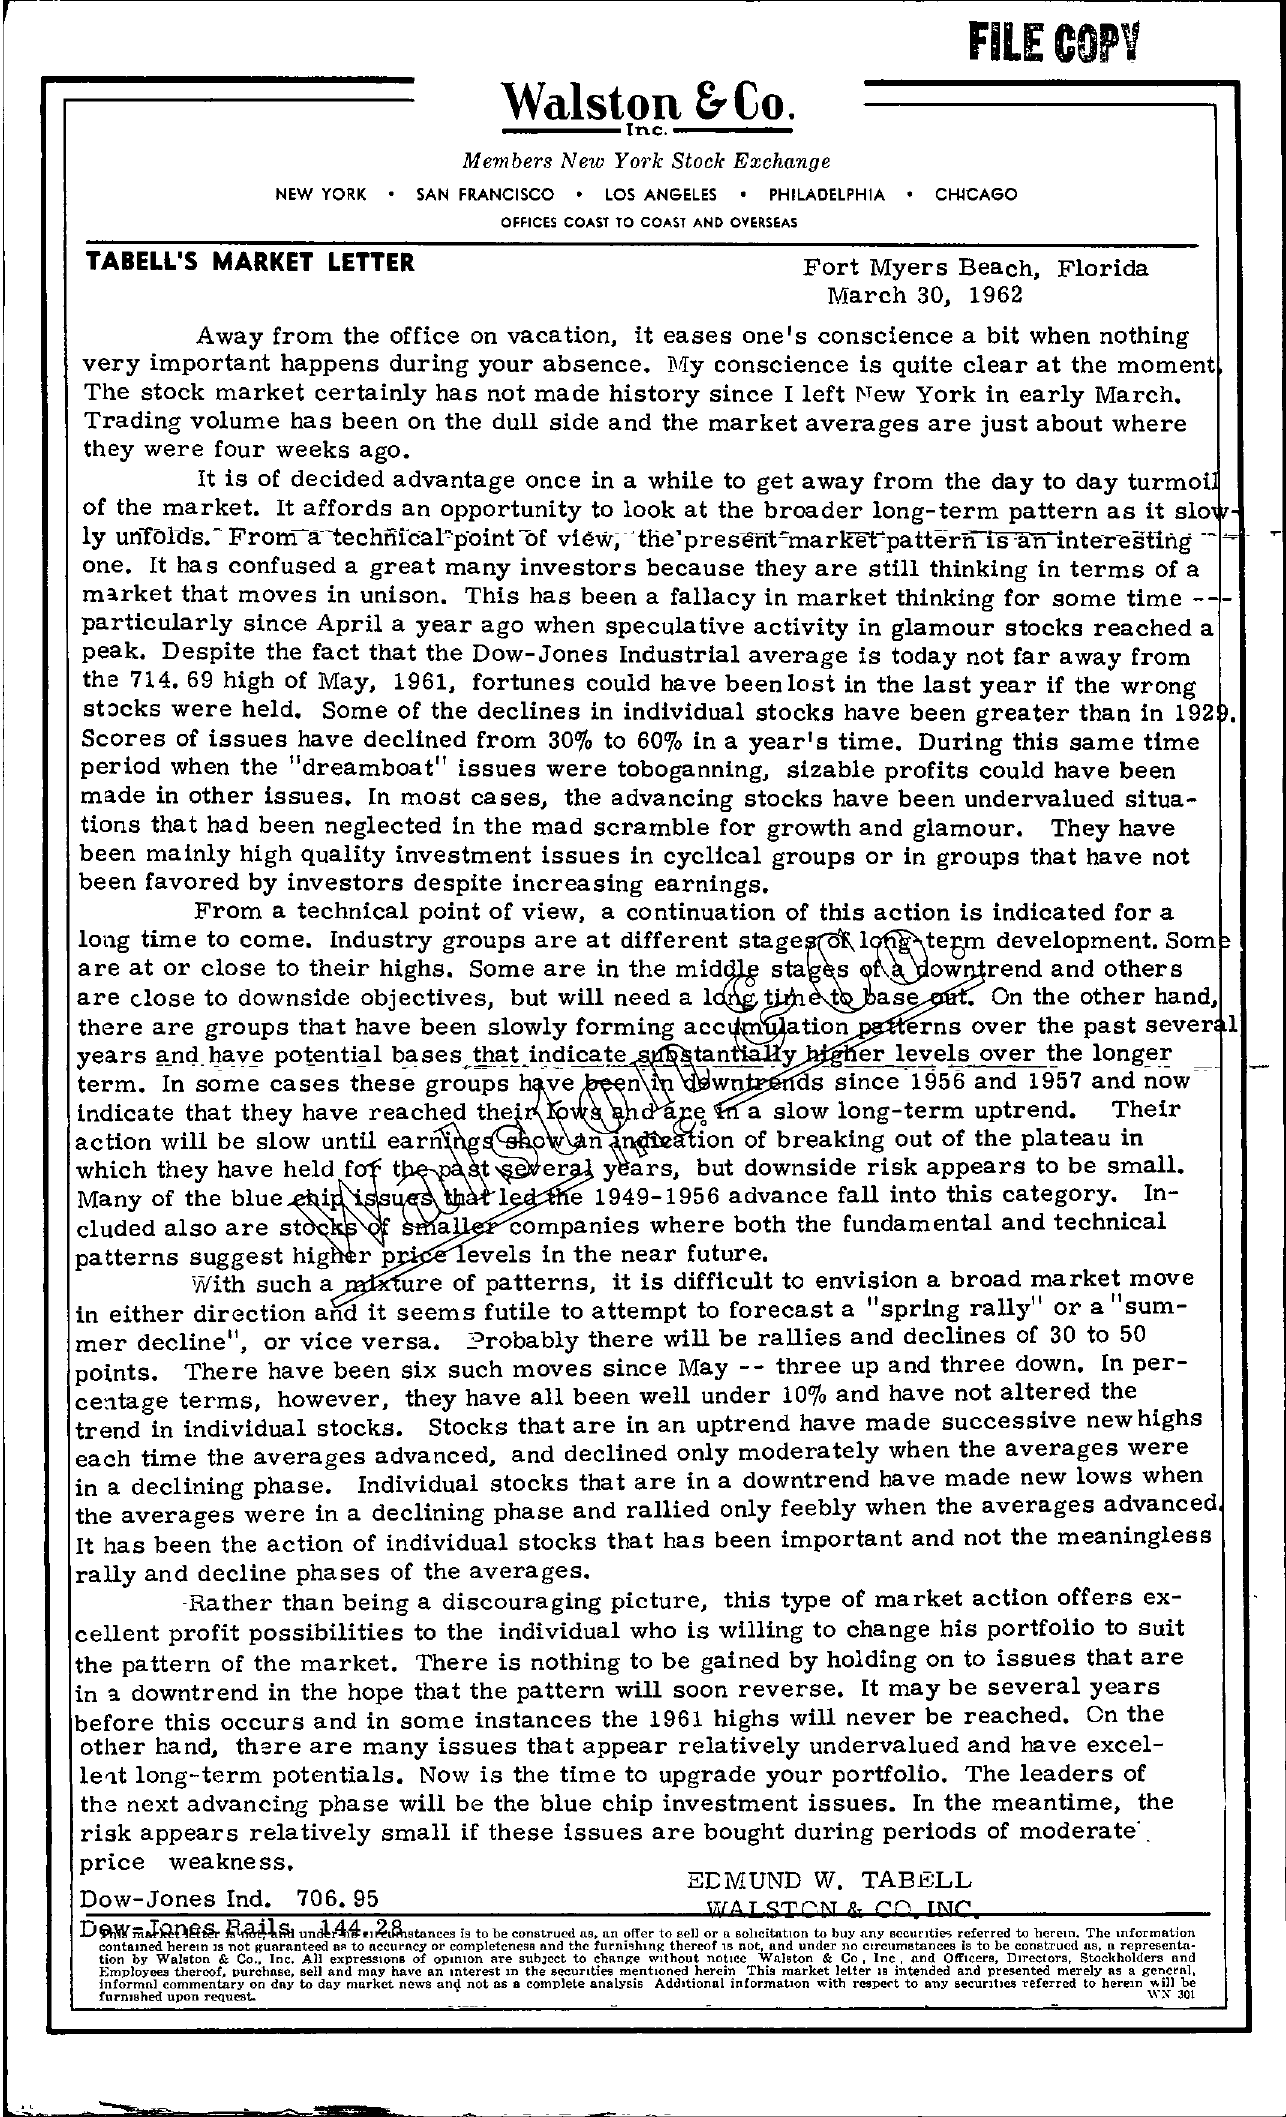 Tabell's Market Letter - March 30, 1962